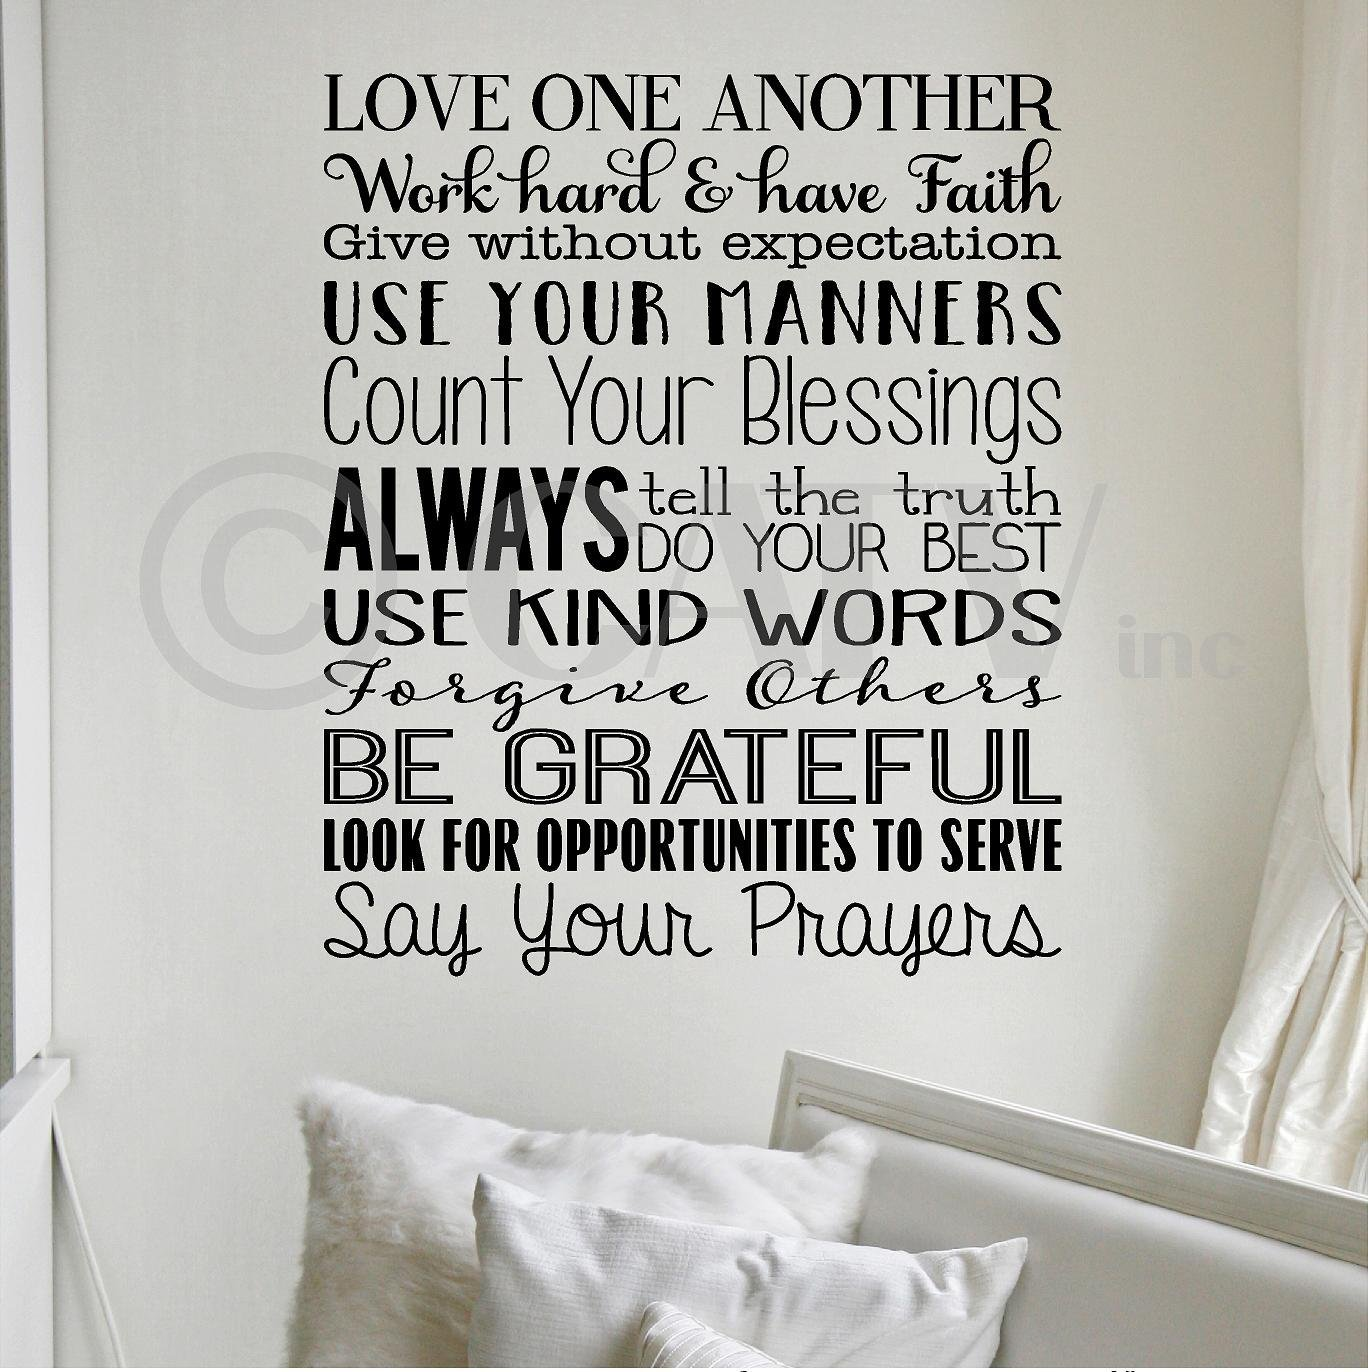 Boodecal Rules of Our Playroom Vinyl Qutoes Wall Decals for Kids Family House Playroom Rules Quotes for Teens Boys Girls Bedroom Toddlers Room Decor Inspirational Sayings 23x47 inches